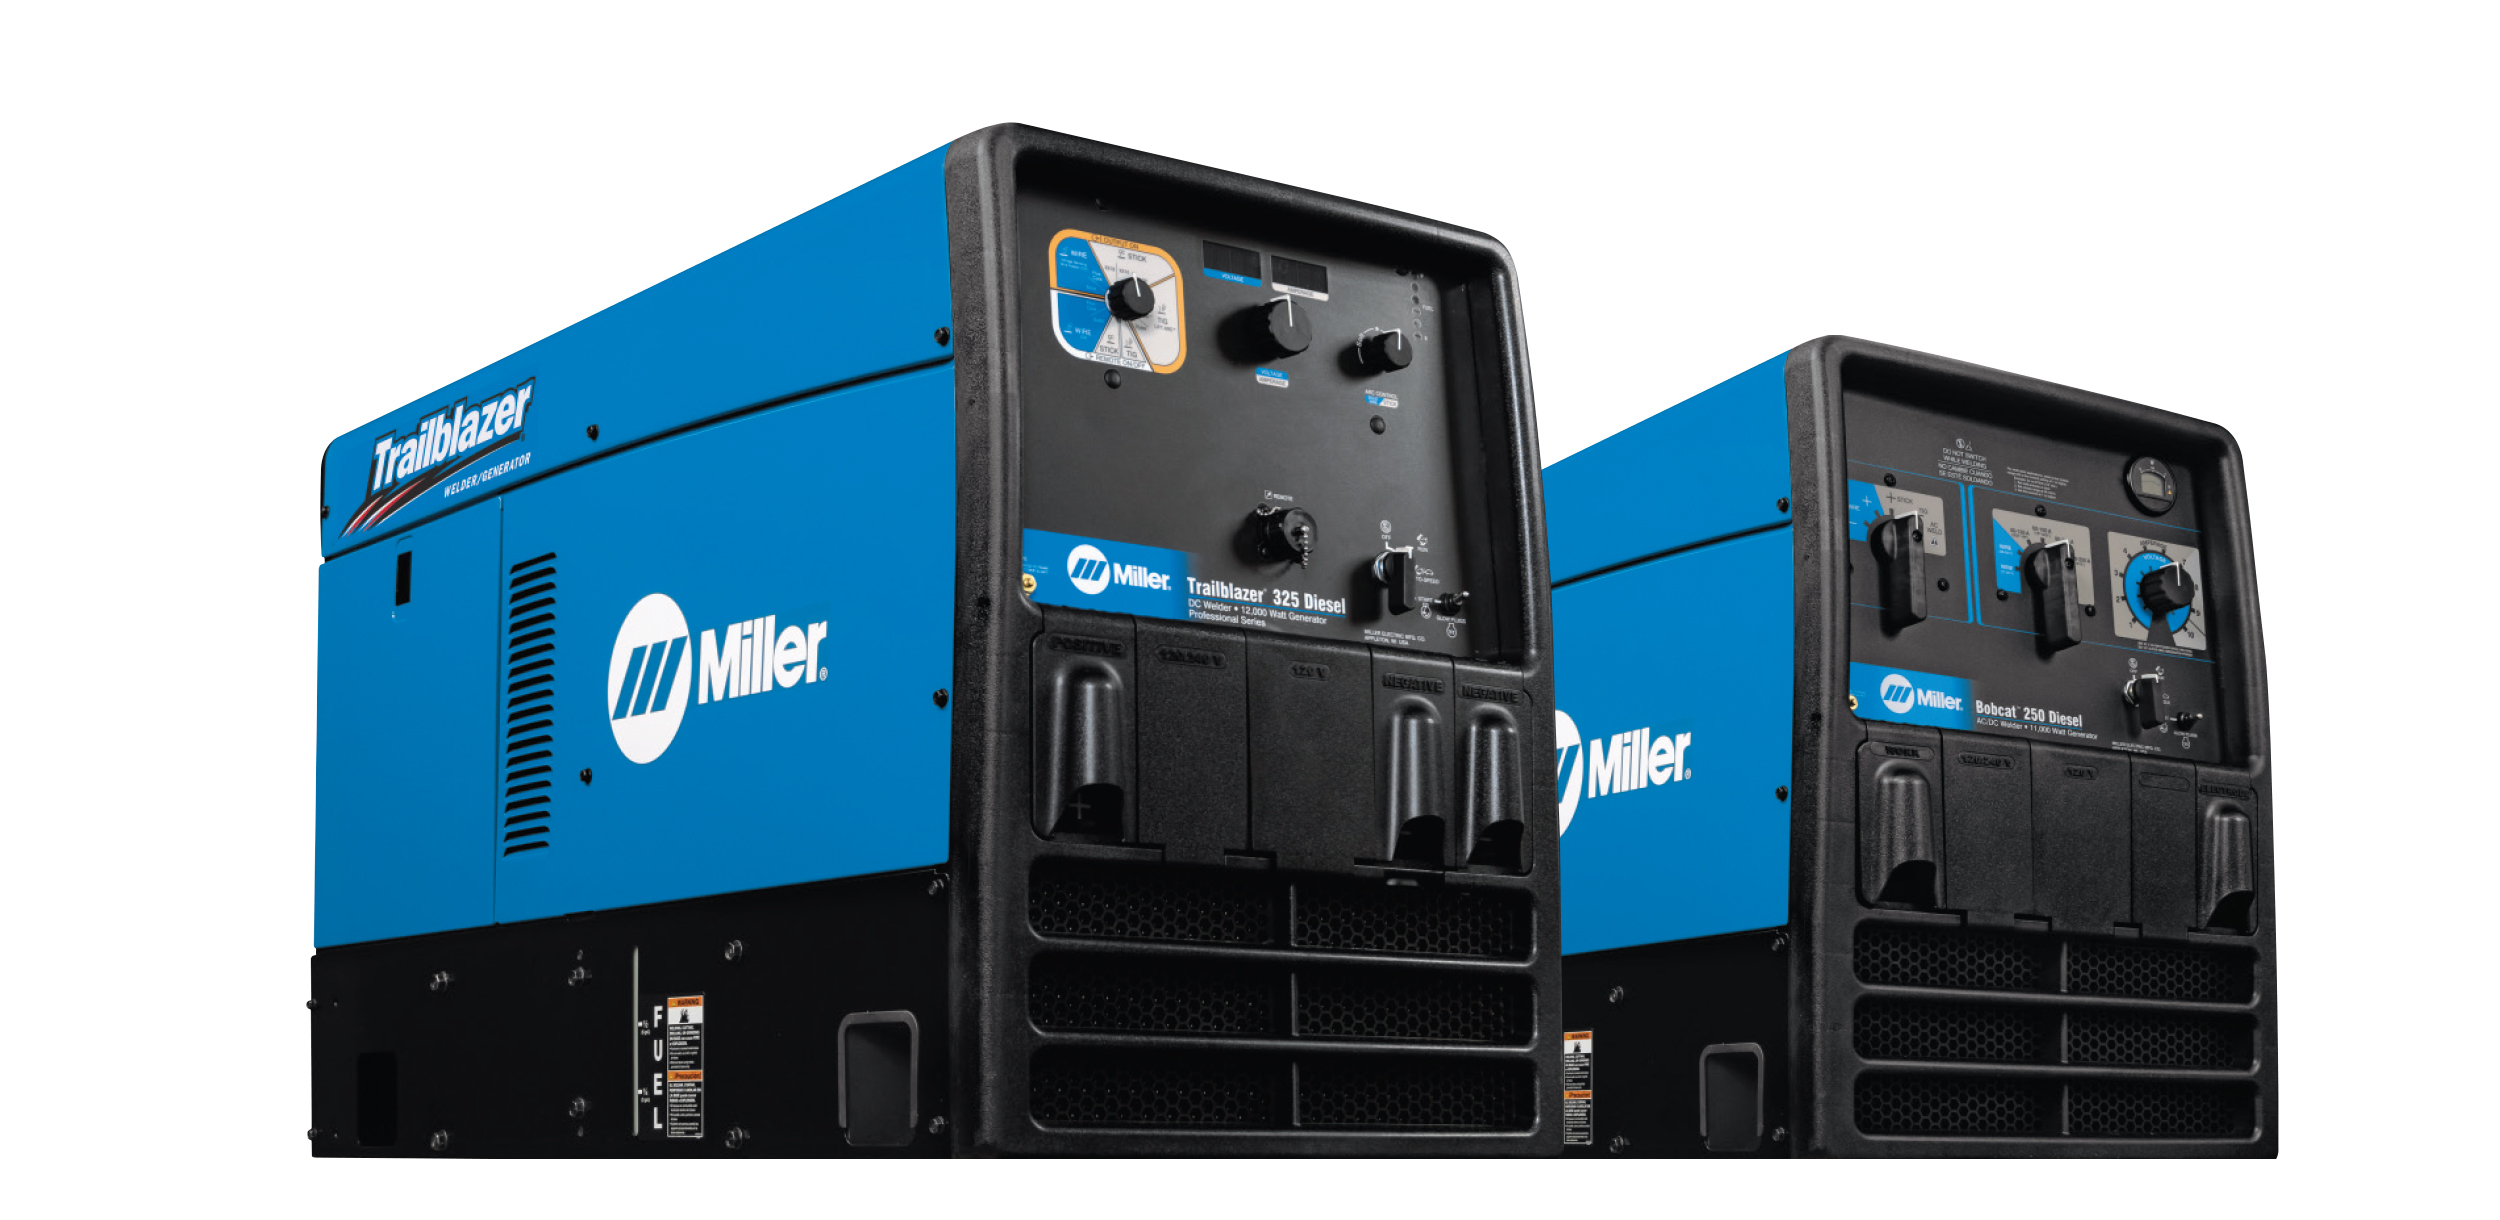 Quieter Diesel Welder Generators Extend Run Time Reduce Fuel Use